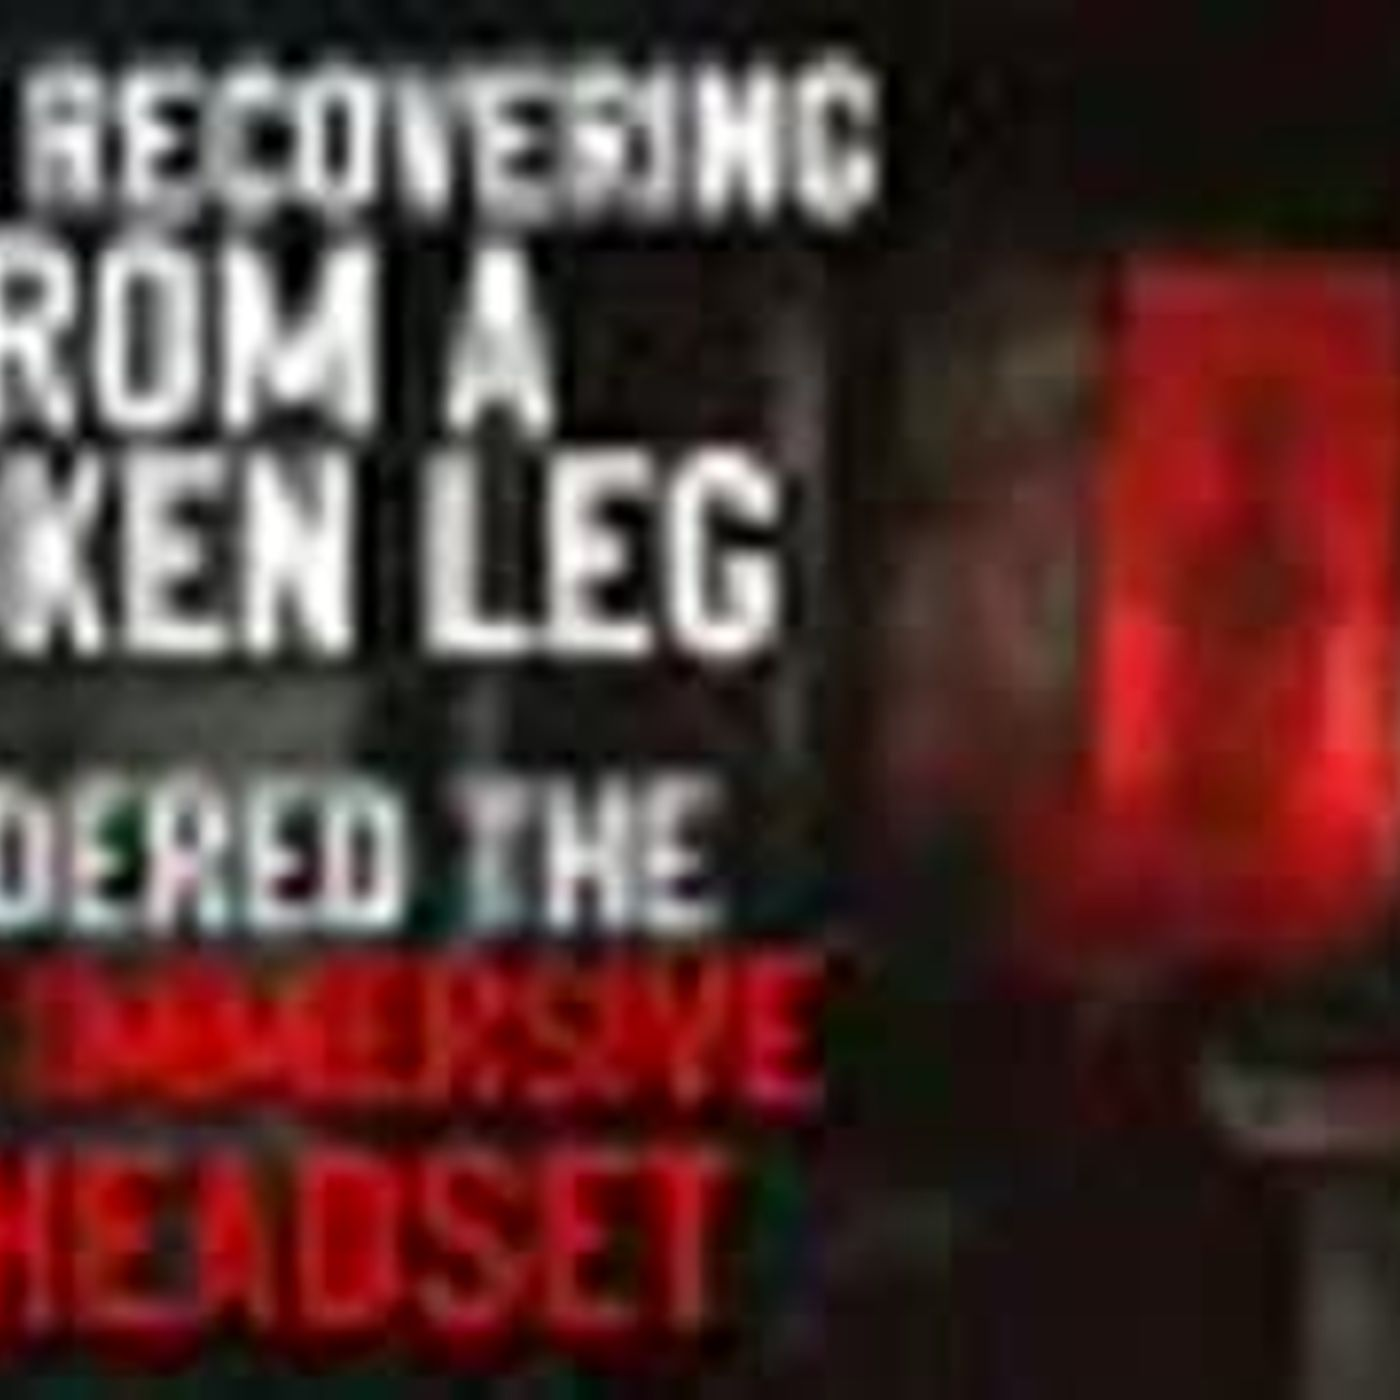 """While recovering from a broken leg, I ordered the most immersive VR headset"" Creepypasta"